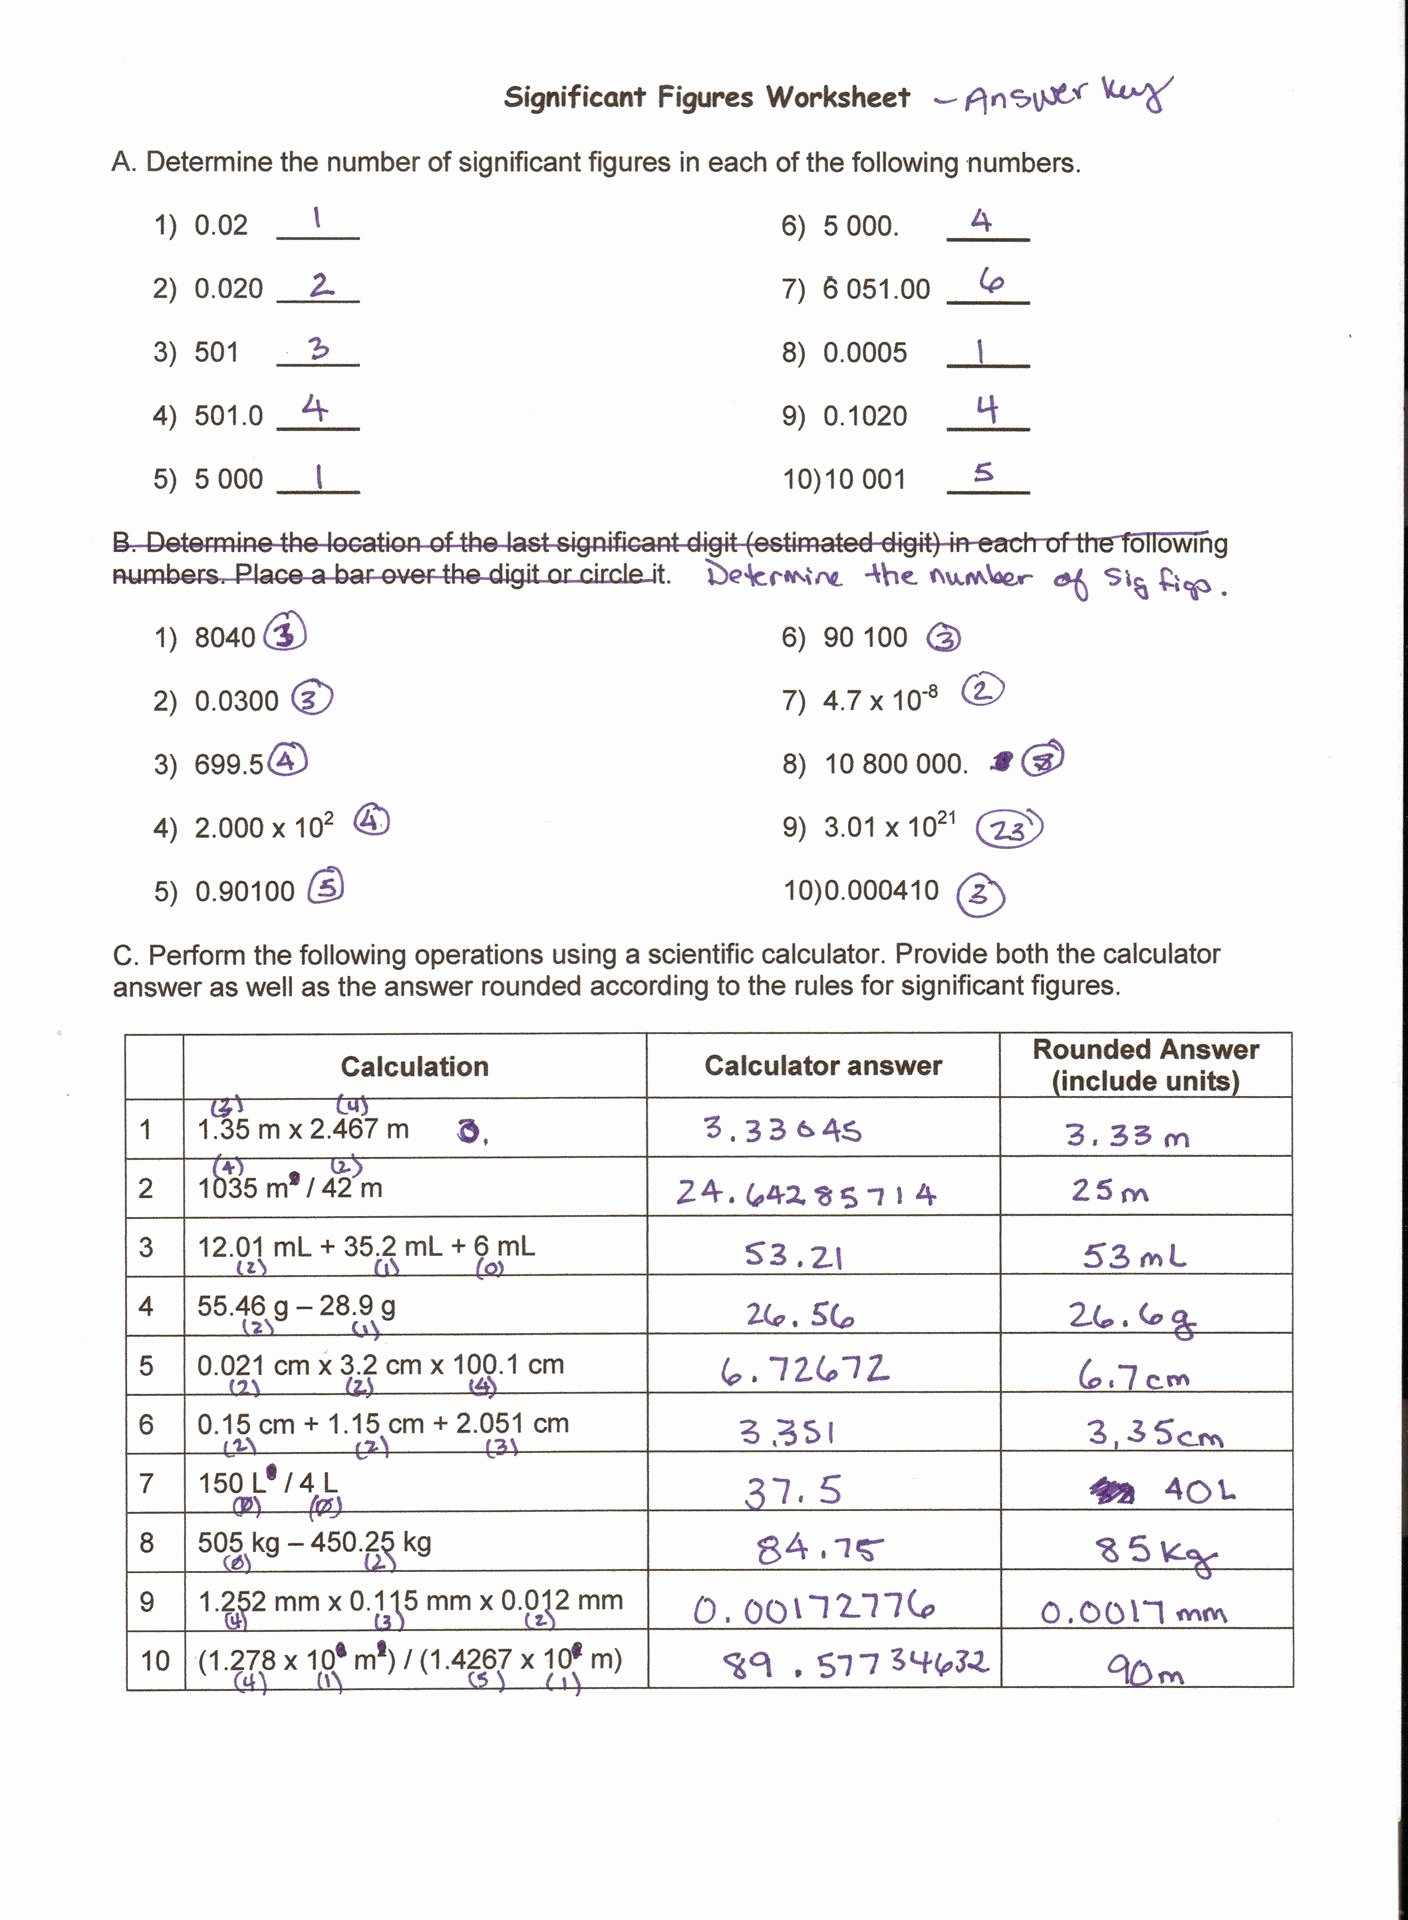 50 Counting Atoms Worksheet Answer Key